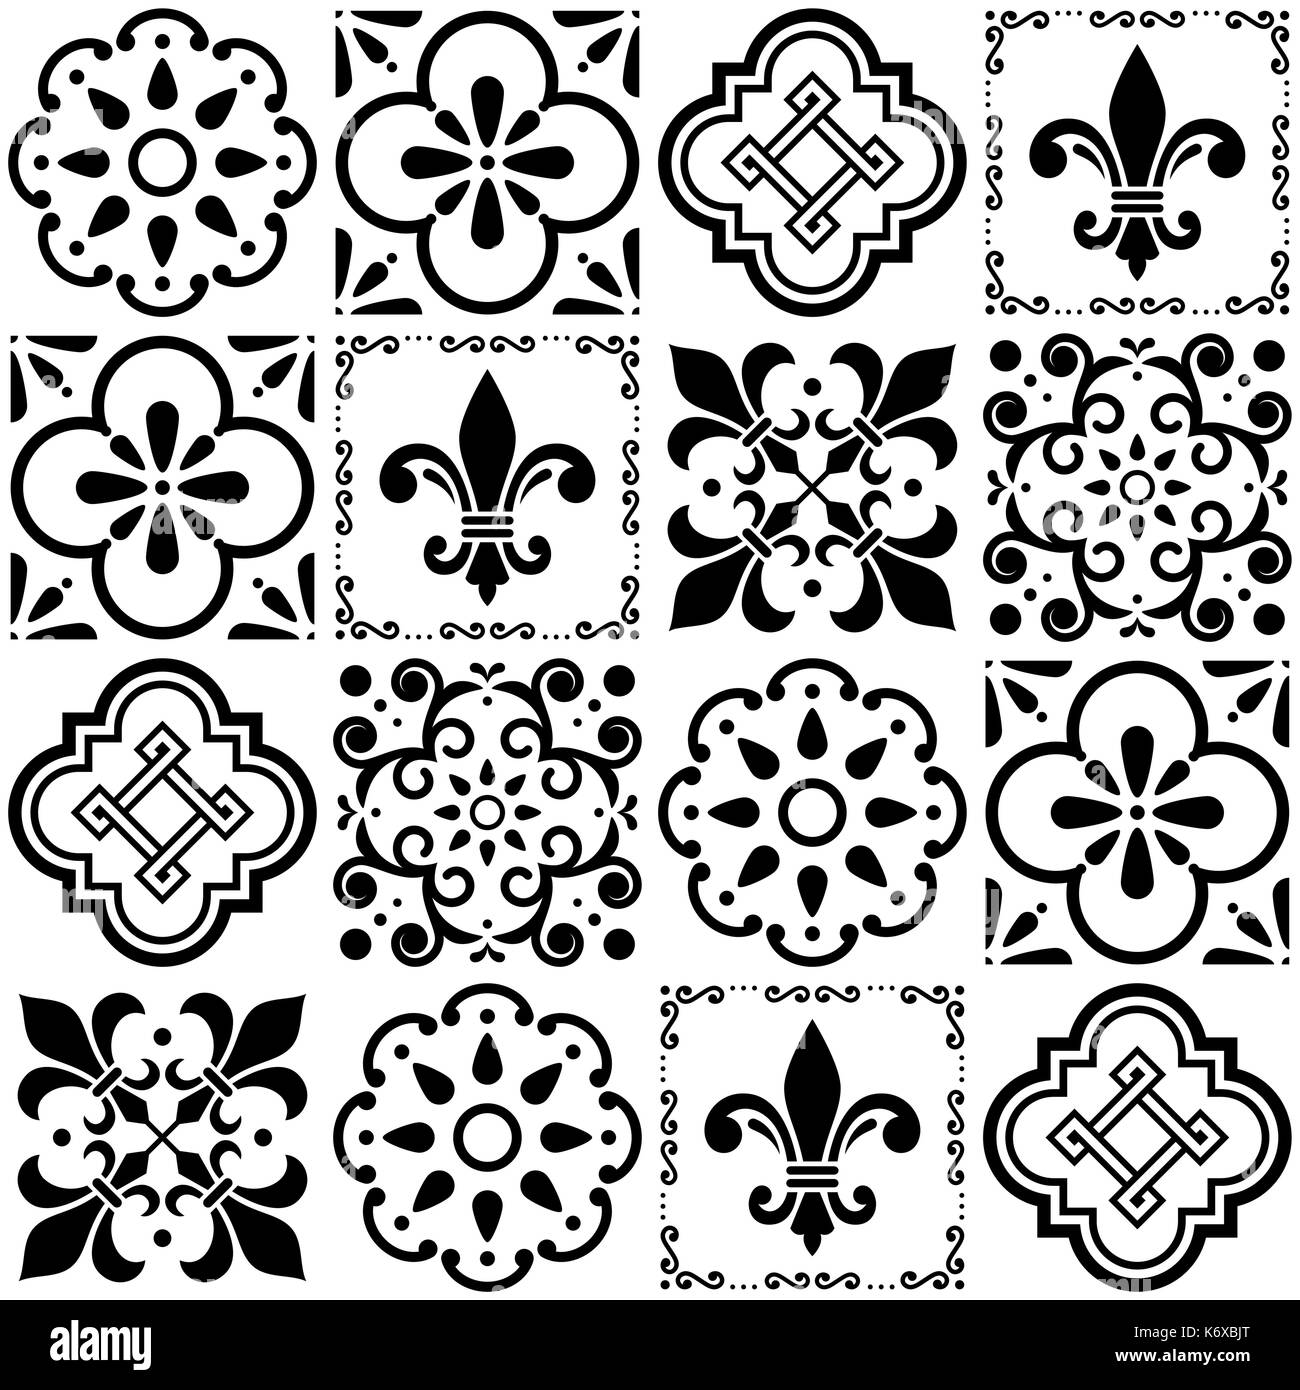 Portuguese vector tiles pattern, Lisbon seamless black and white tile design, Azulejos vintage geometric ceramics   Floral and abstract shapes - Stock Vector